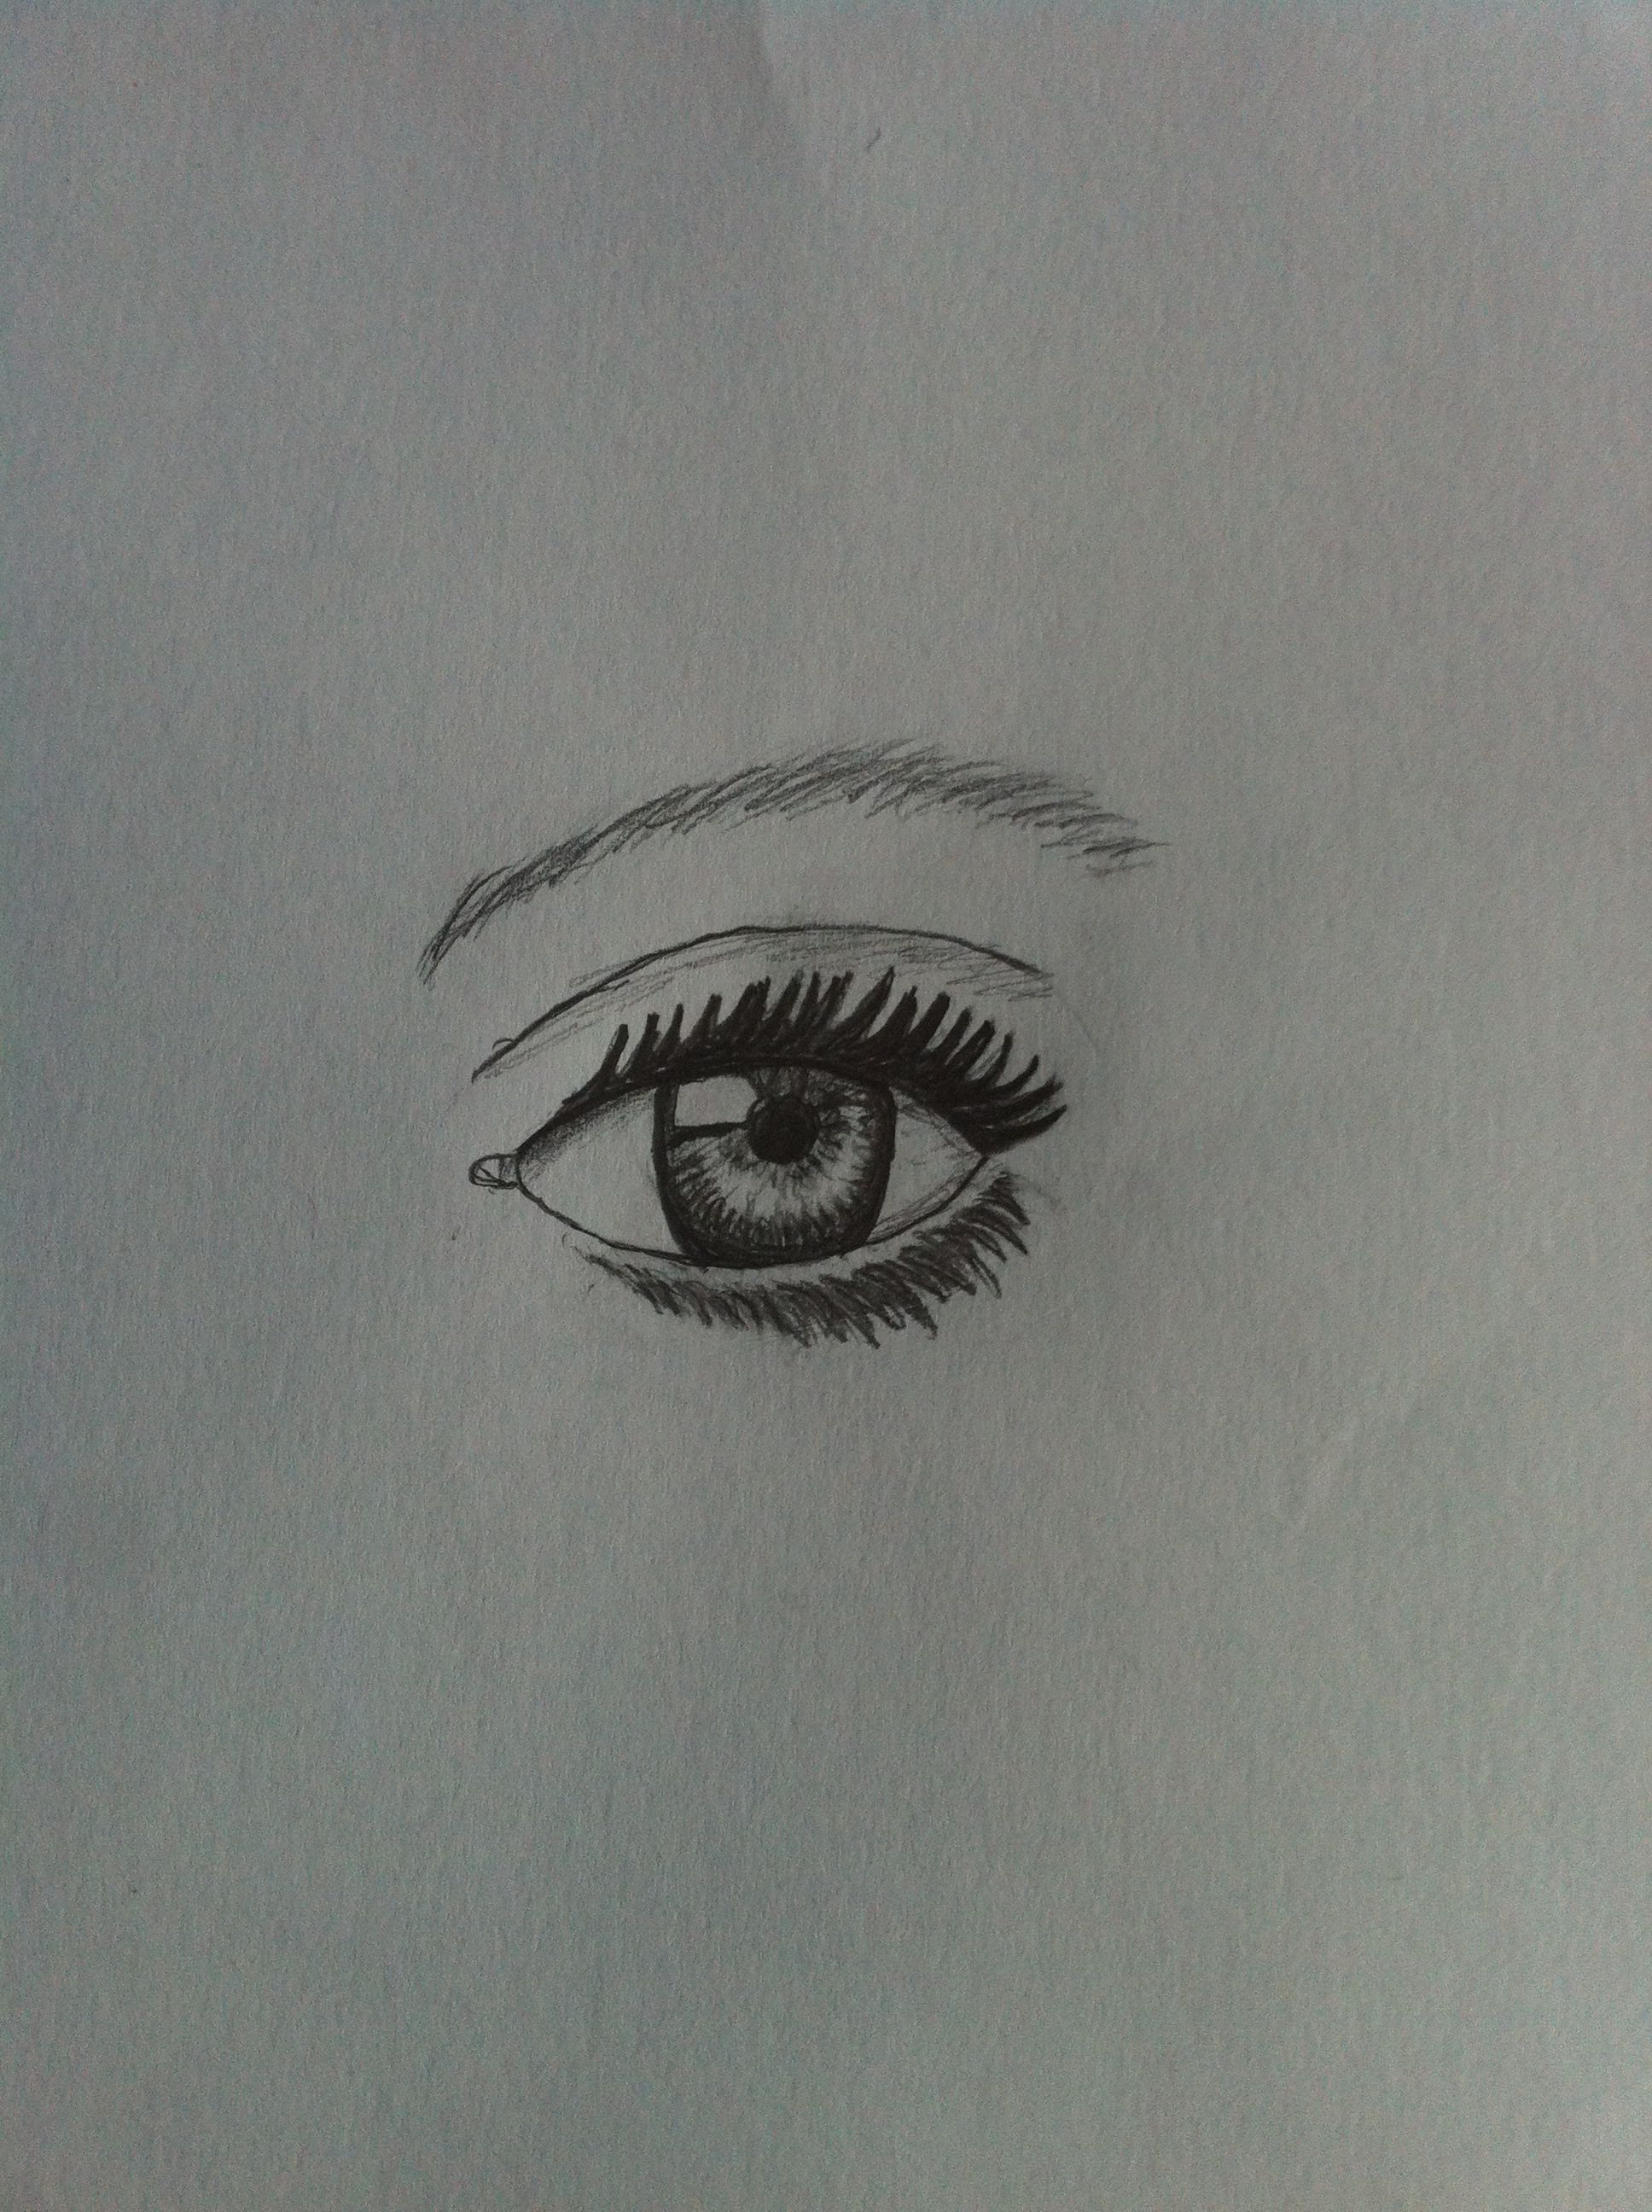 Just drew this eye!!!